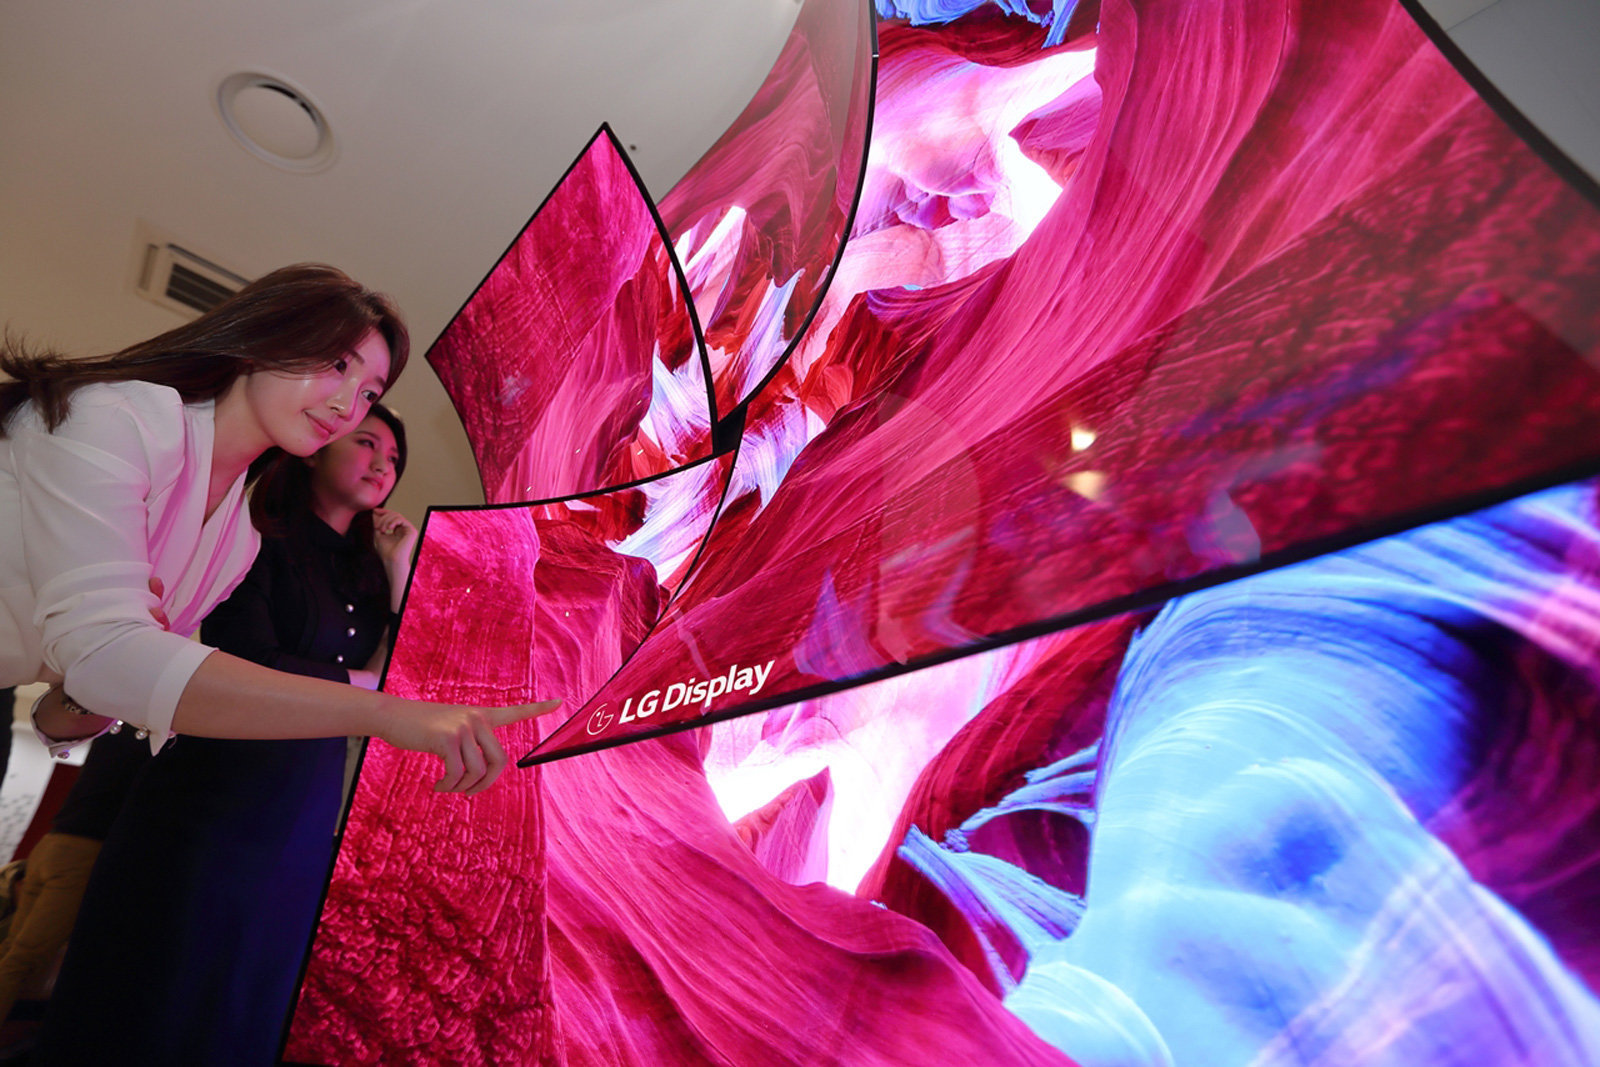 LG Display unveils an 88-inch 8K OLED